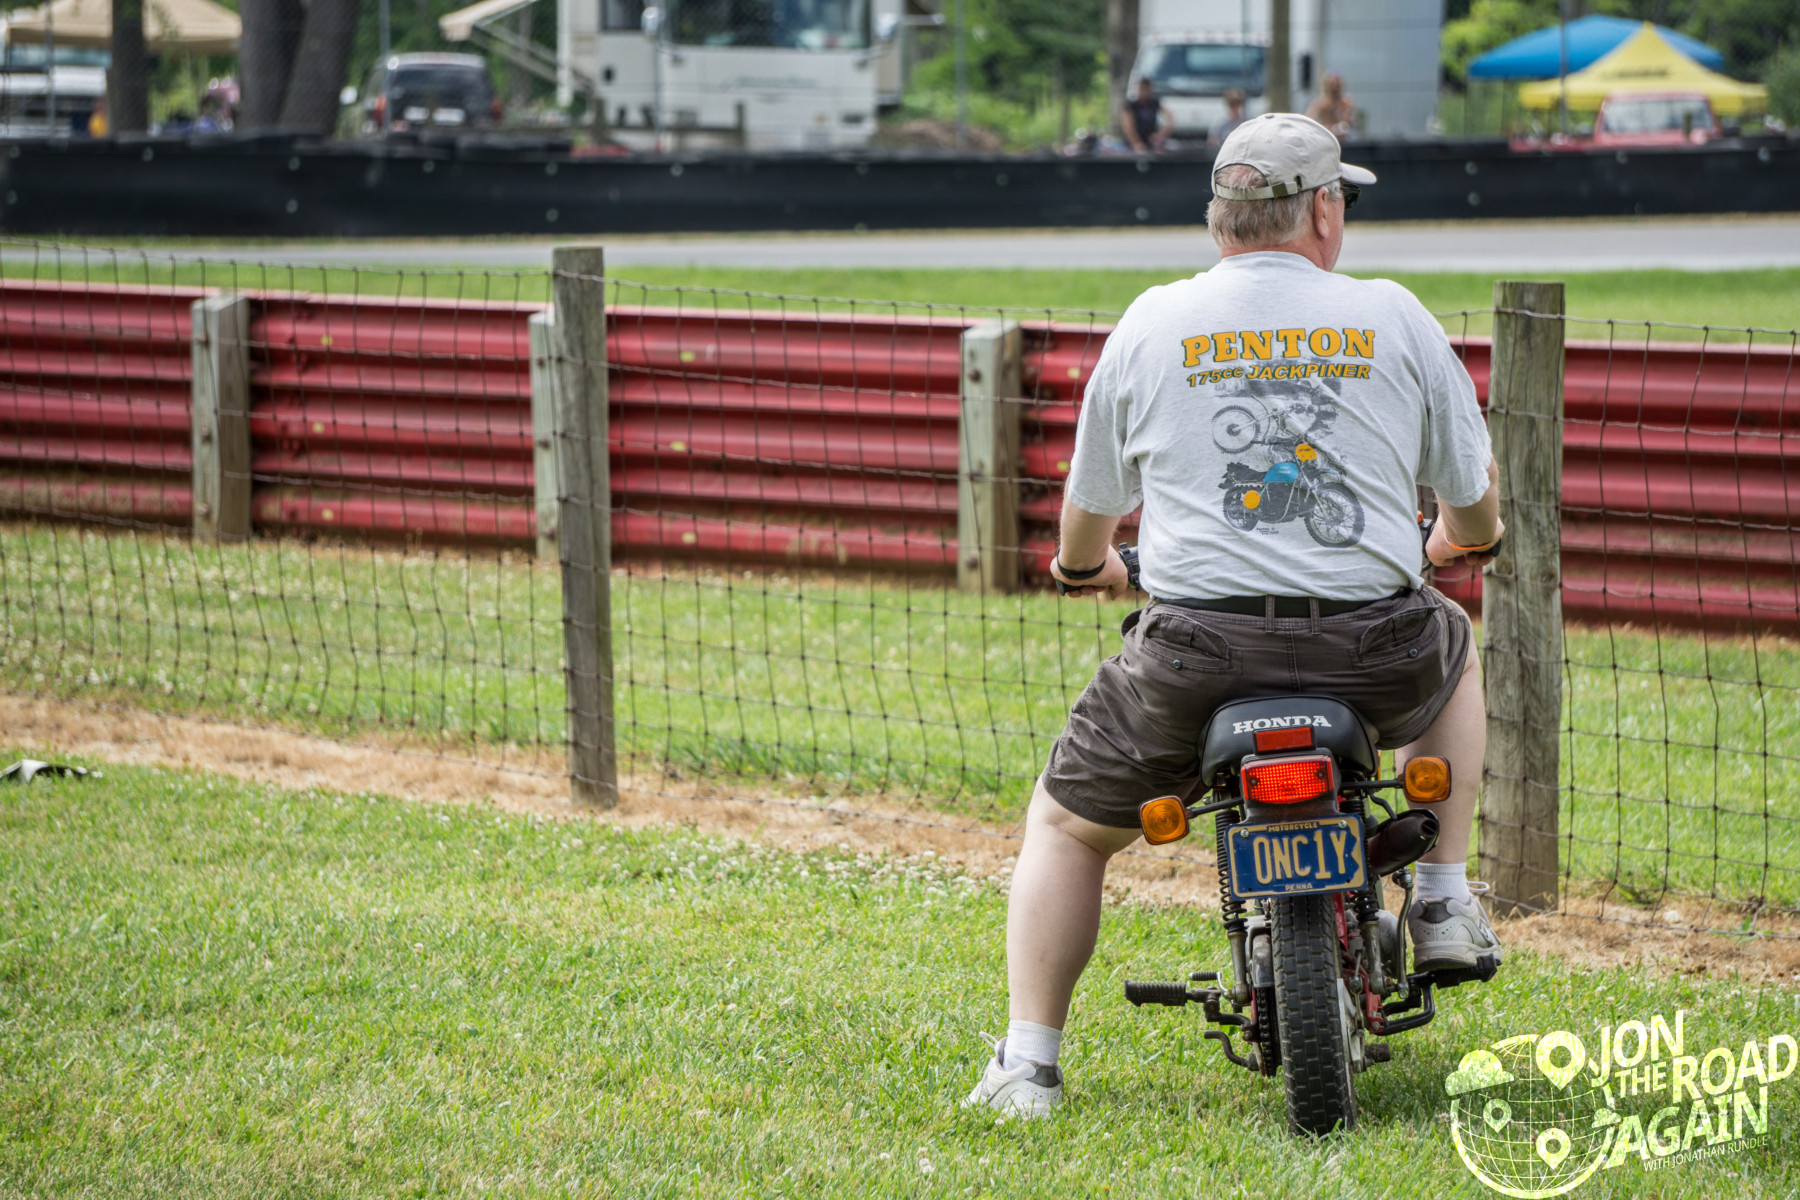 Watching Motorcycle racing at mid-ohio at AMA Vintage Motorcycle Days